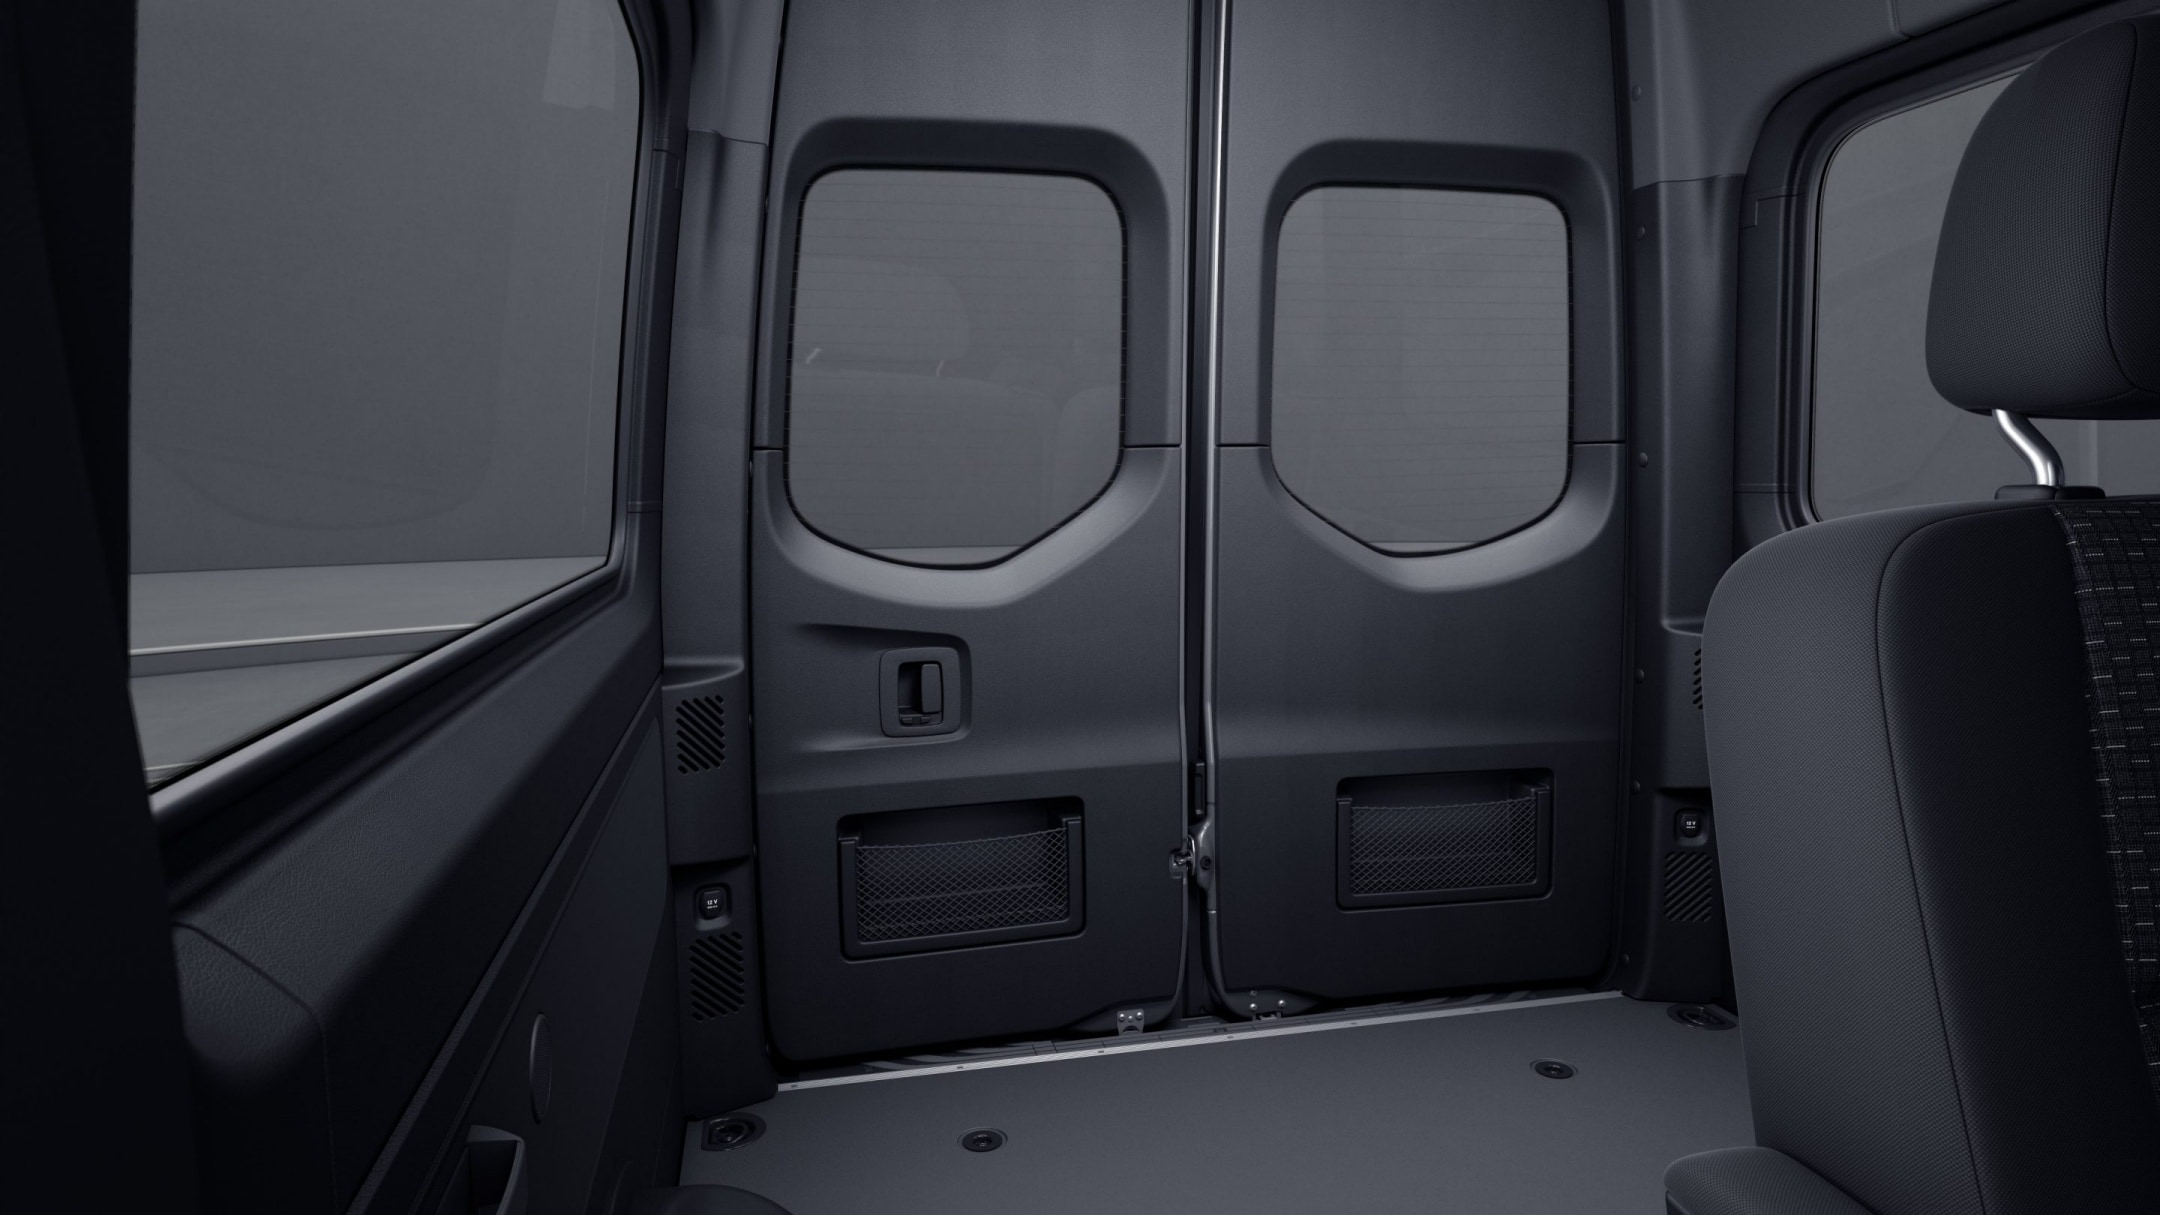 Sprinter minibus tourer, full panelling of hinged rear doors, stowage compartment with net in rear doors